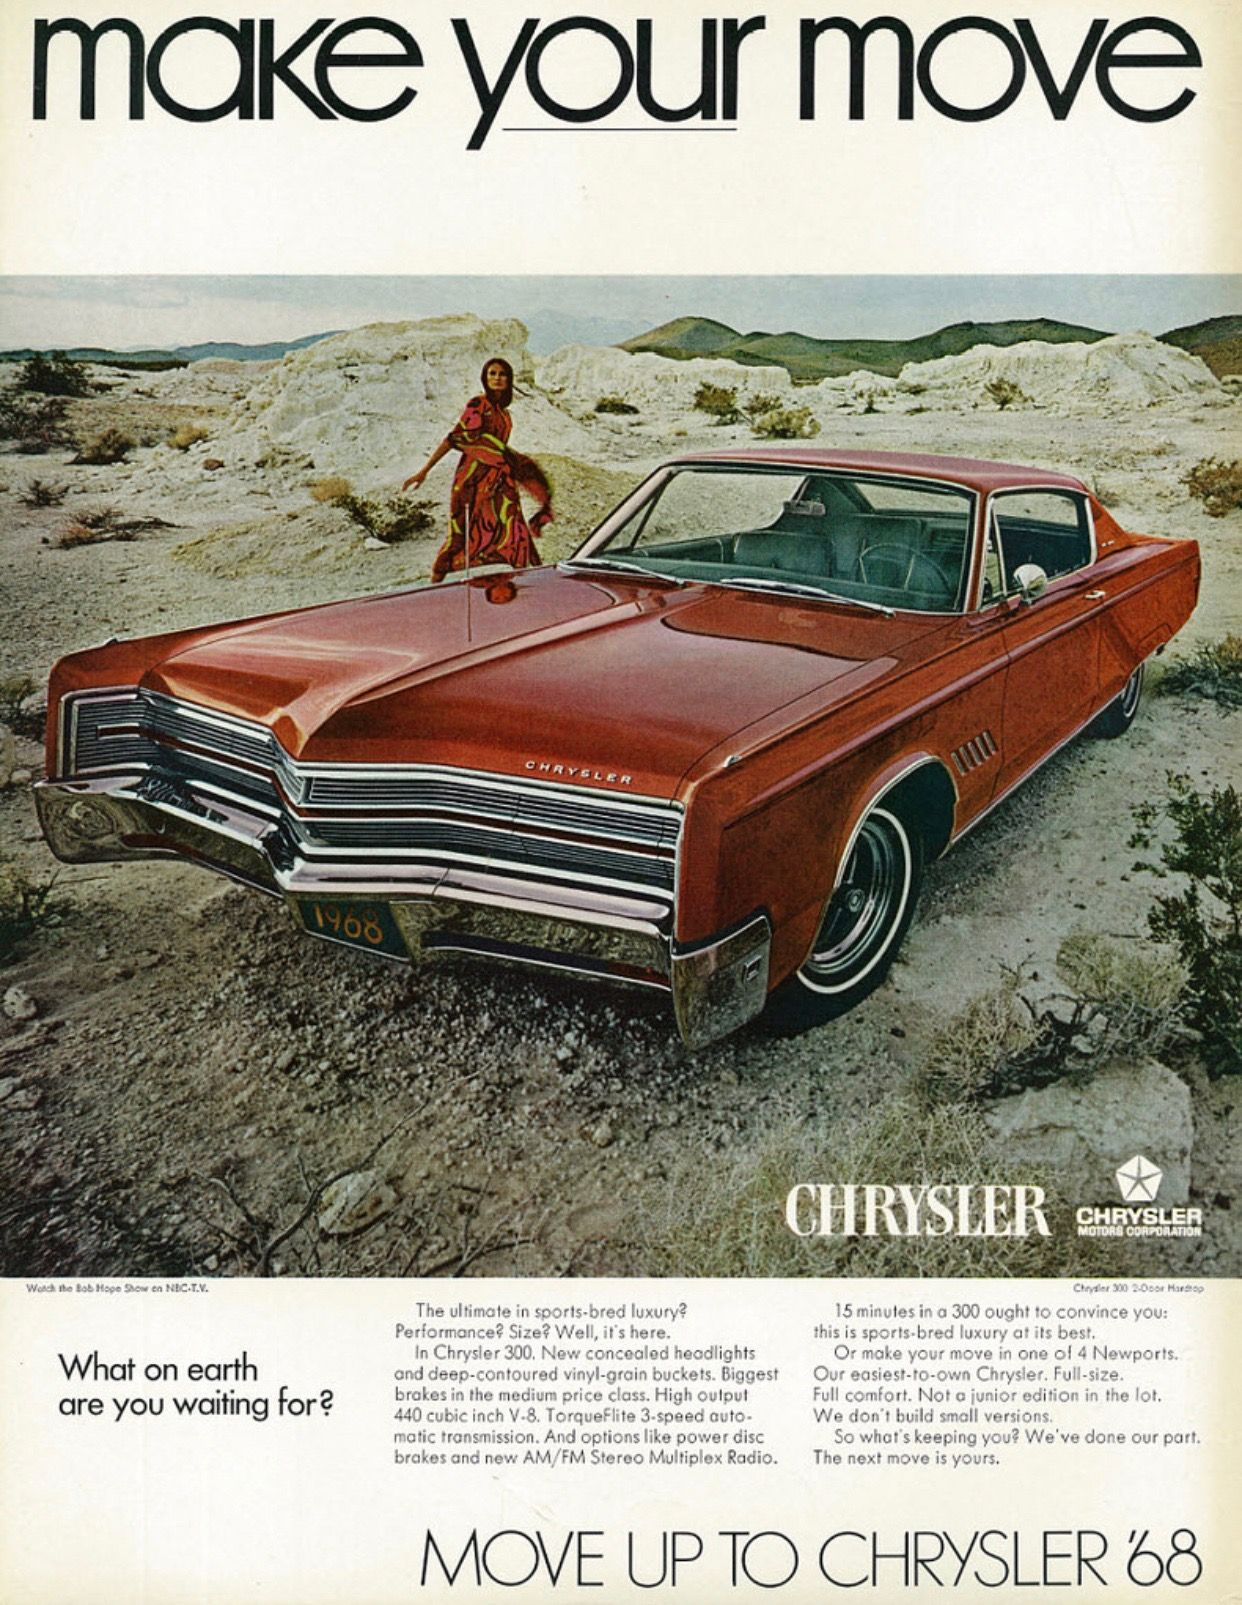 1968 chrysler 300 cars pinterest chrysler 300 cars and mopar 1968 chrysler 300 sciox Image collections